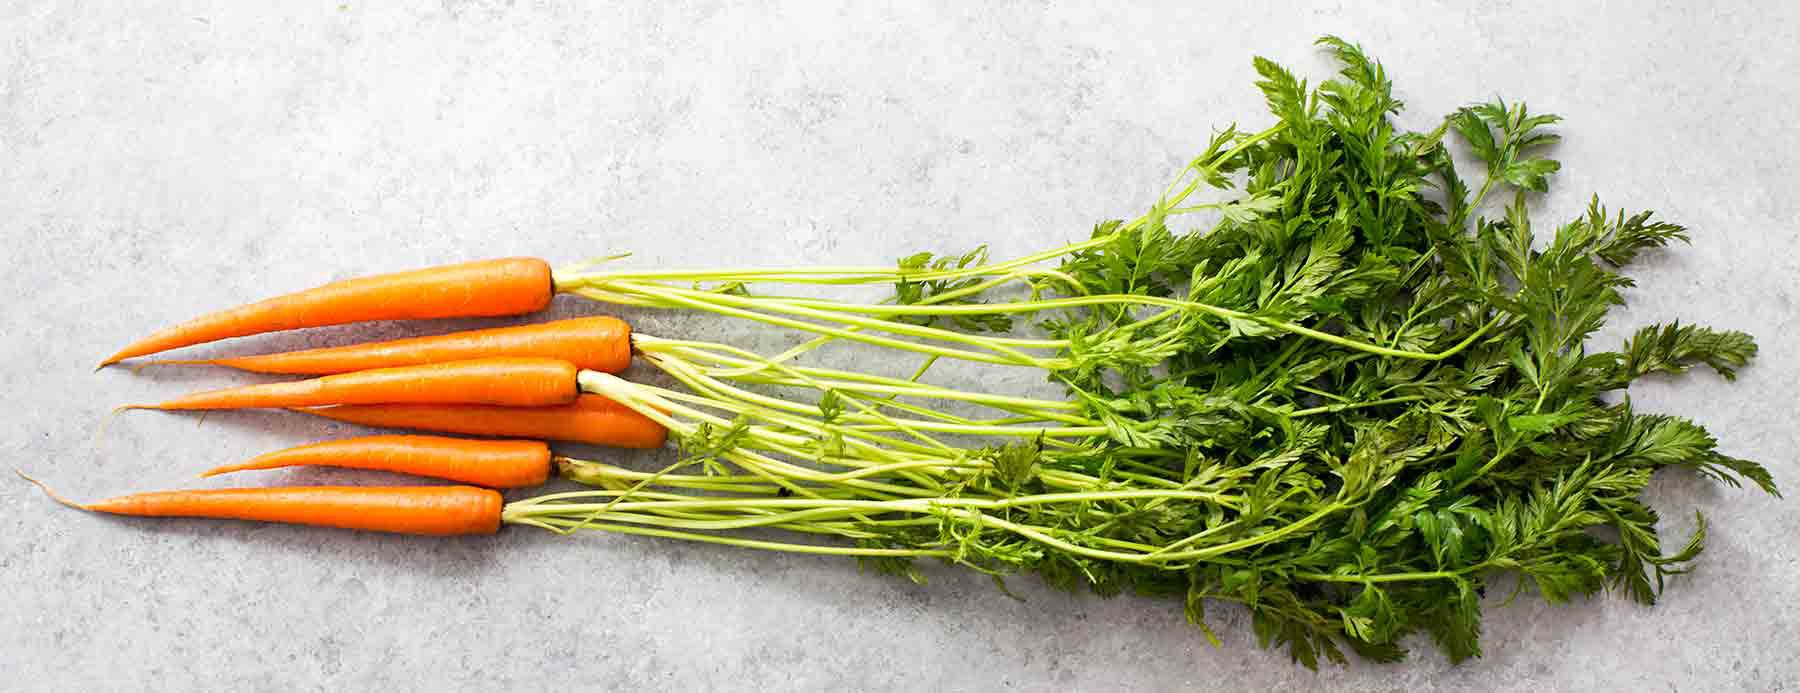 Fresh Young Carrots with carrot tops carrot greens